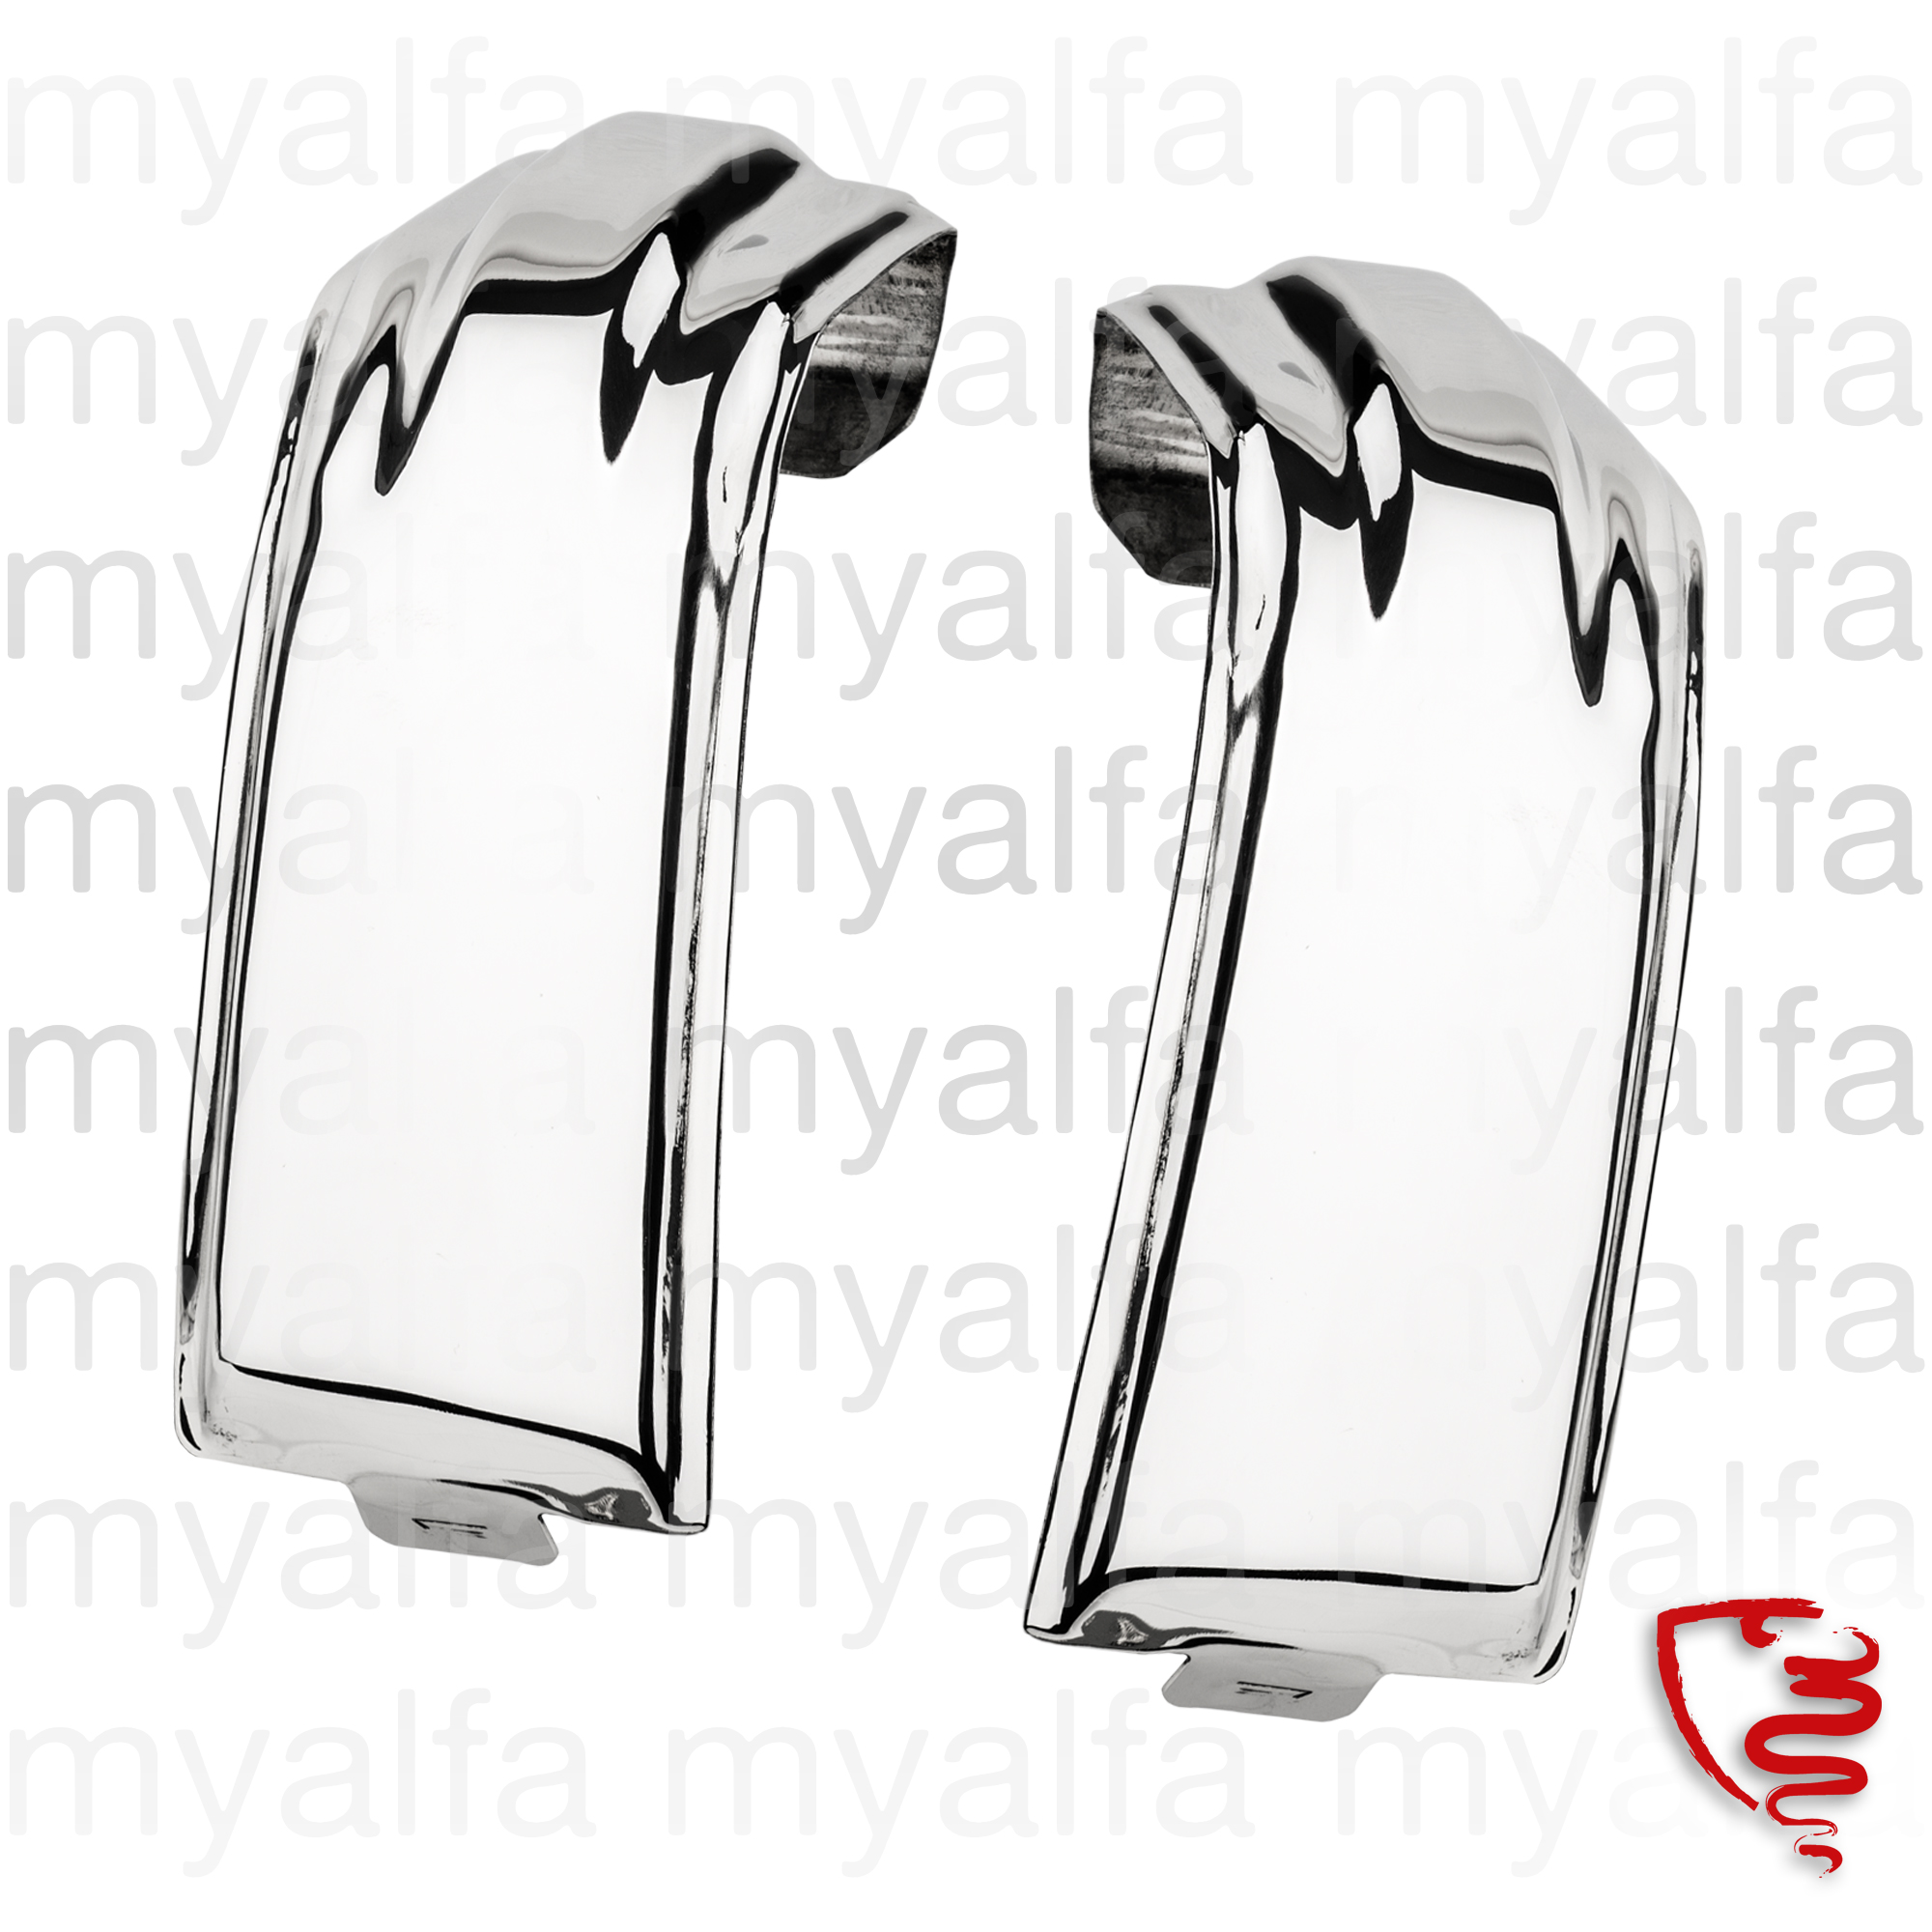 Set covers the joints of rear bumpers for 105/115, Coupe, Body parts, Chrome Parts, Rear